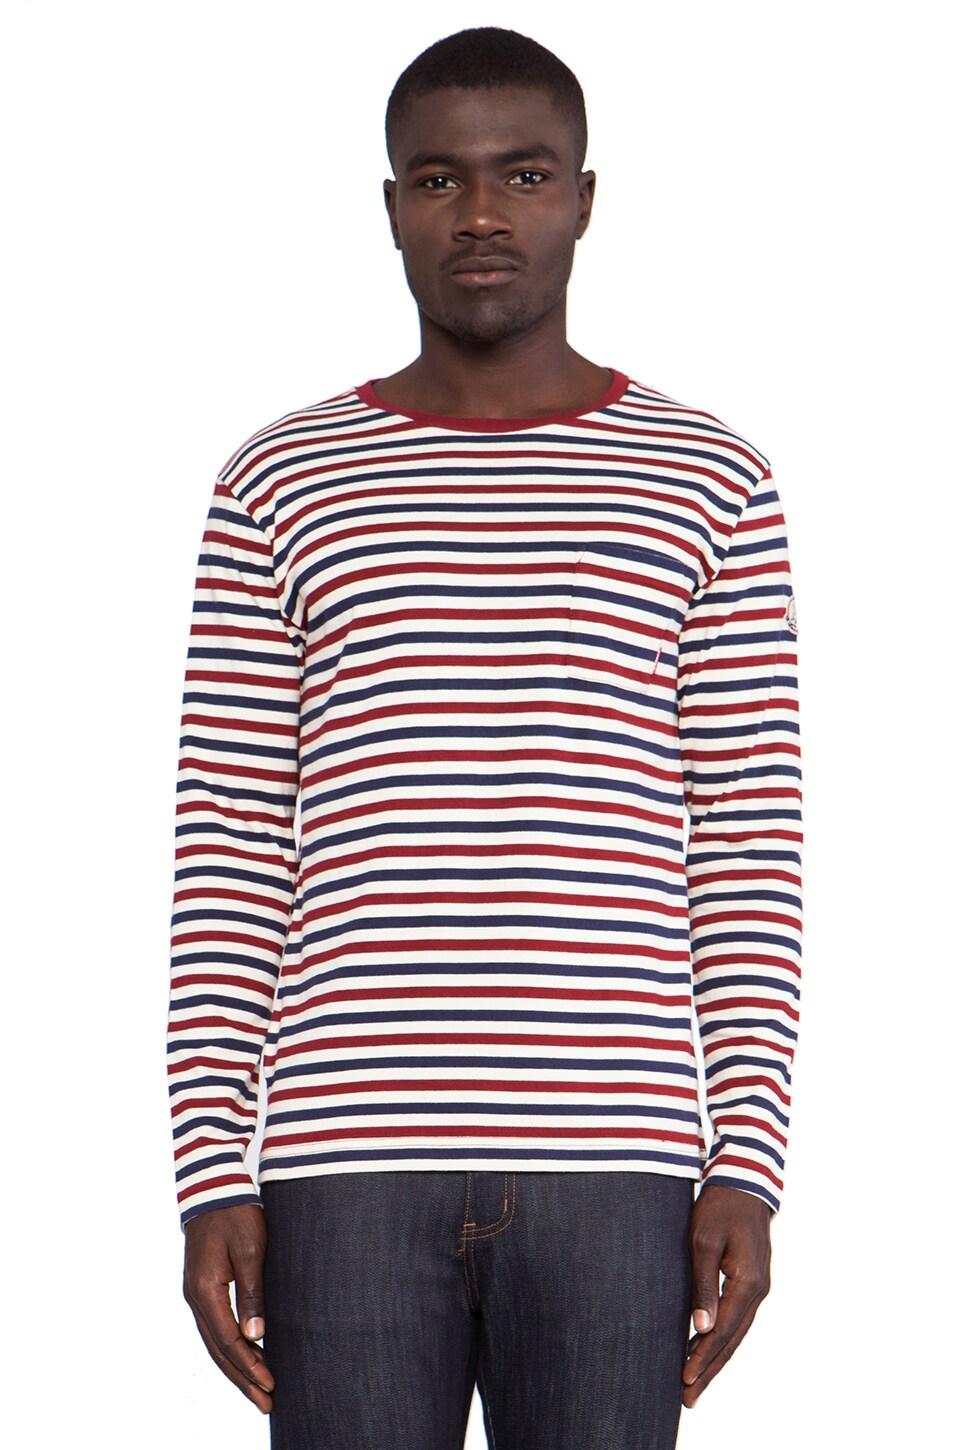 Fuct Border L/S Tee in Tricolor